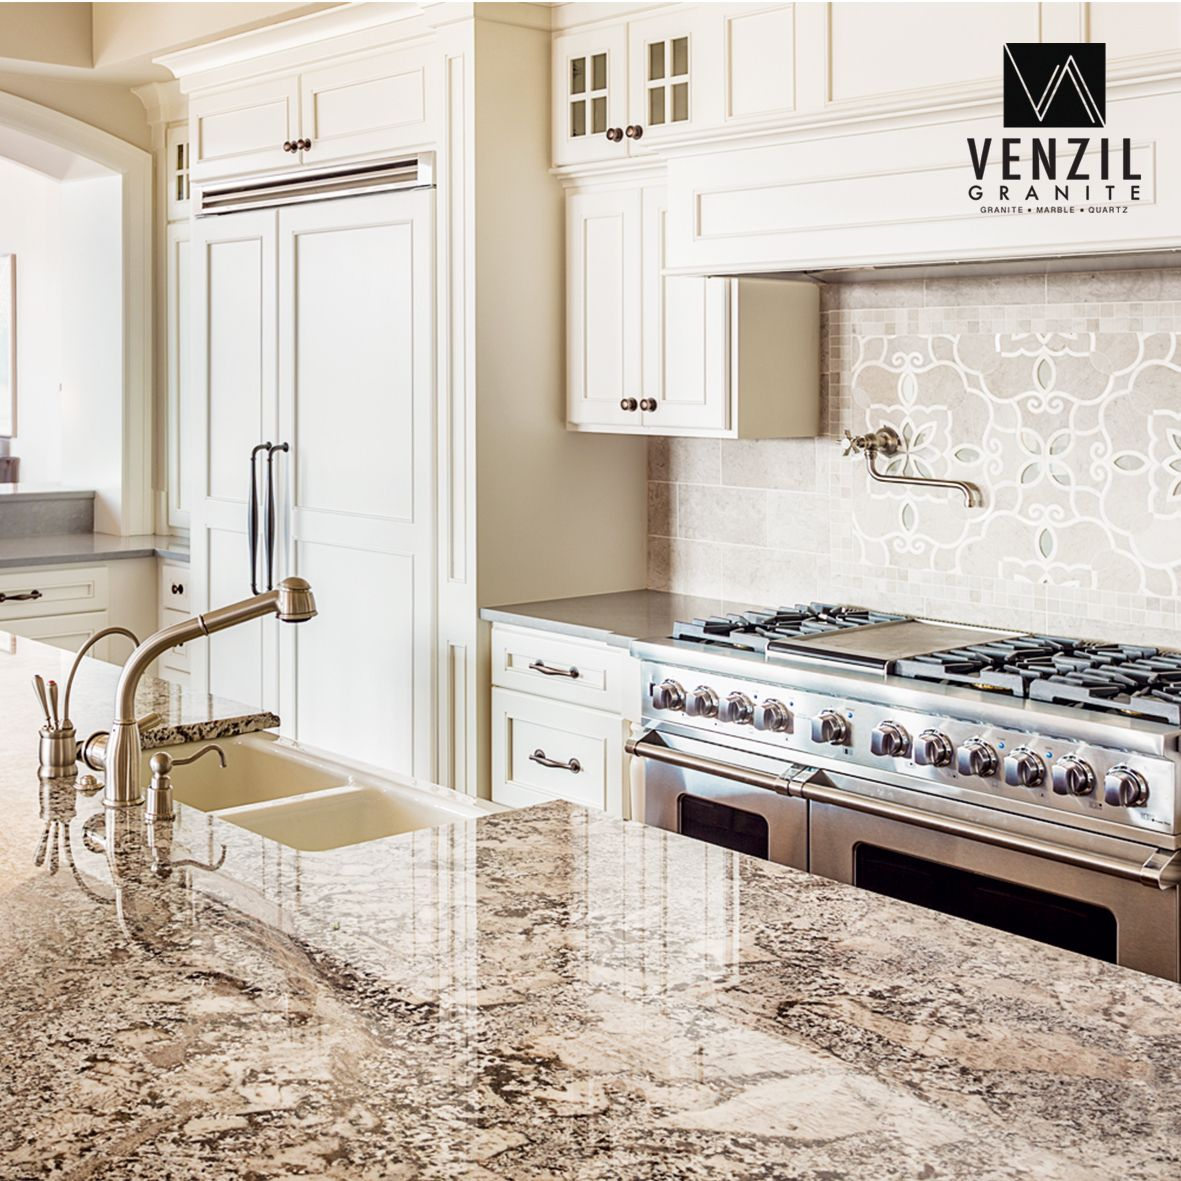 Commercial Residential Services Fabrication And Installation Of Kitchen Countertops Bathroom Vani Simple Kitchen Kitchen Rennovation Shop Kitchen Cabinets